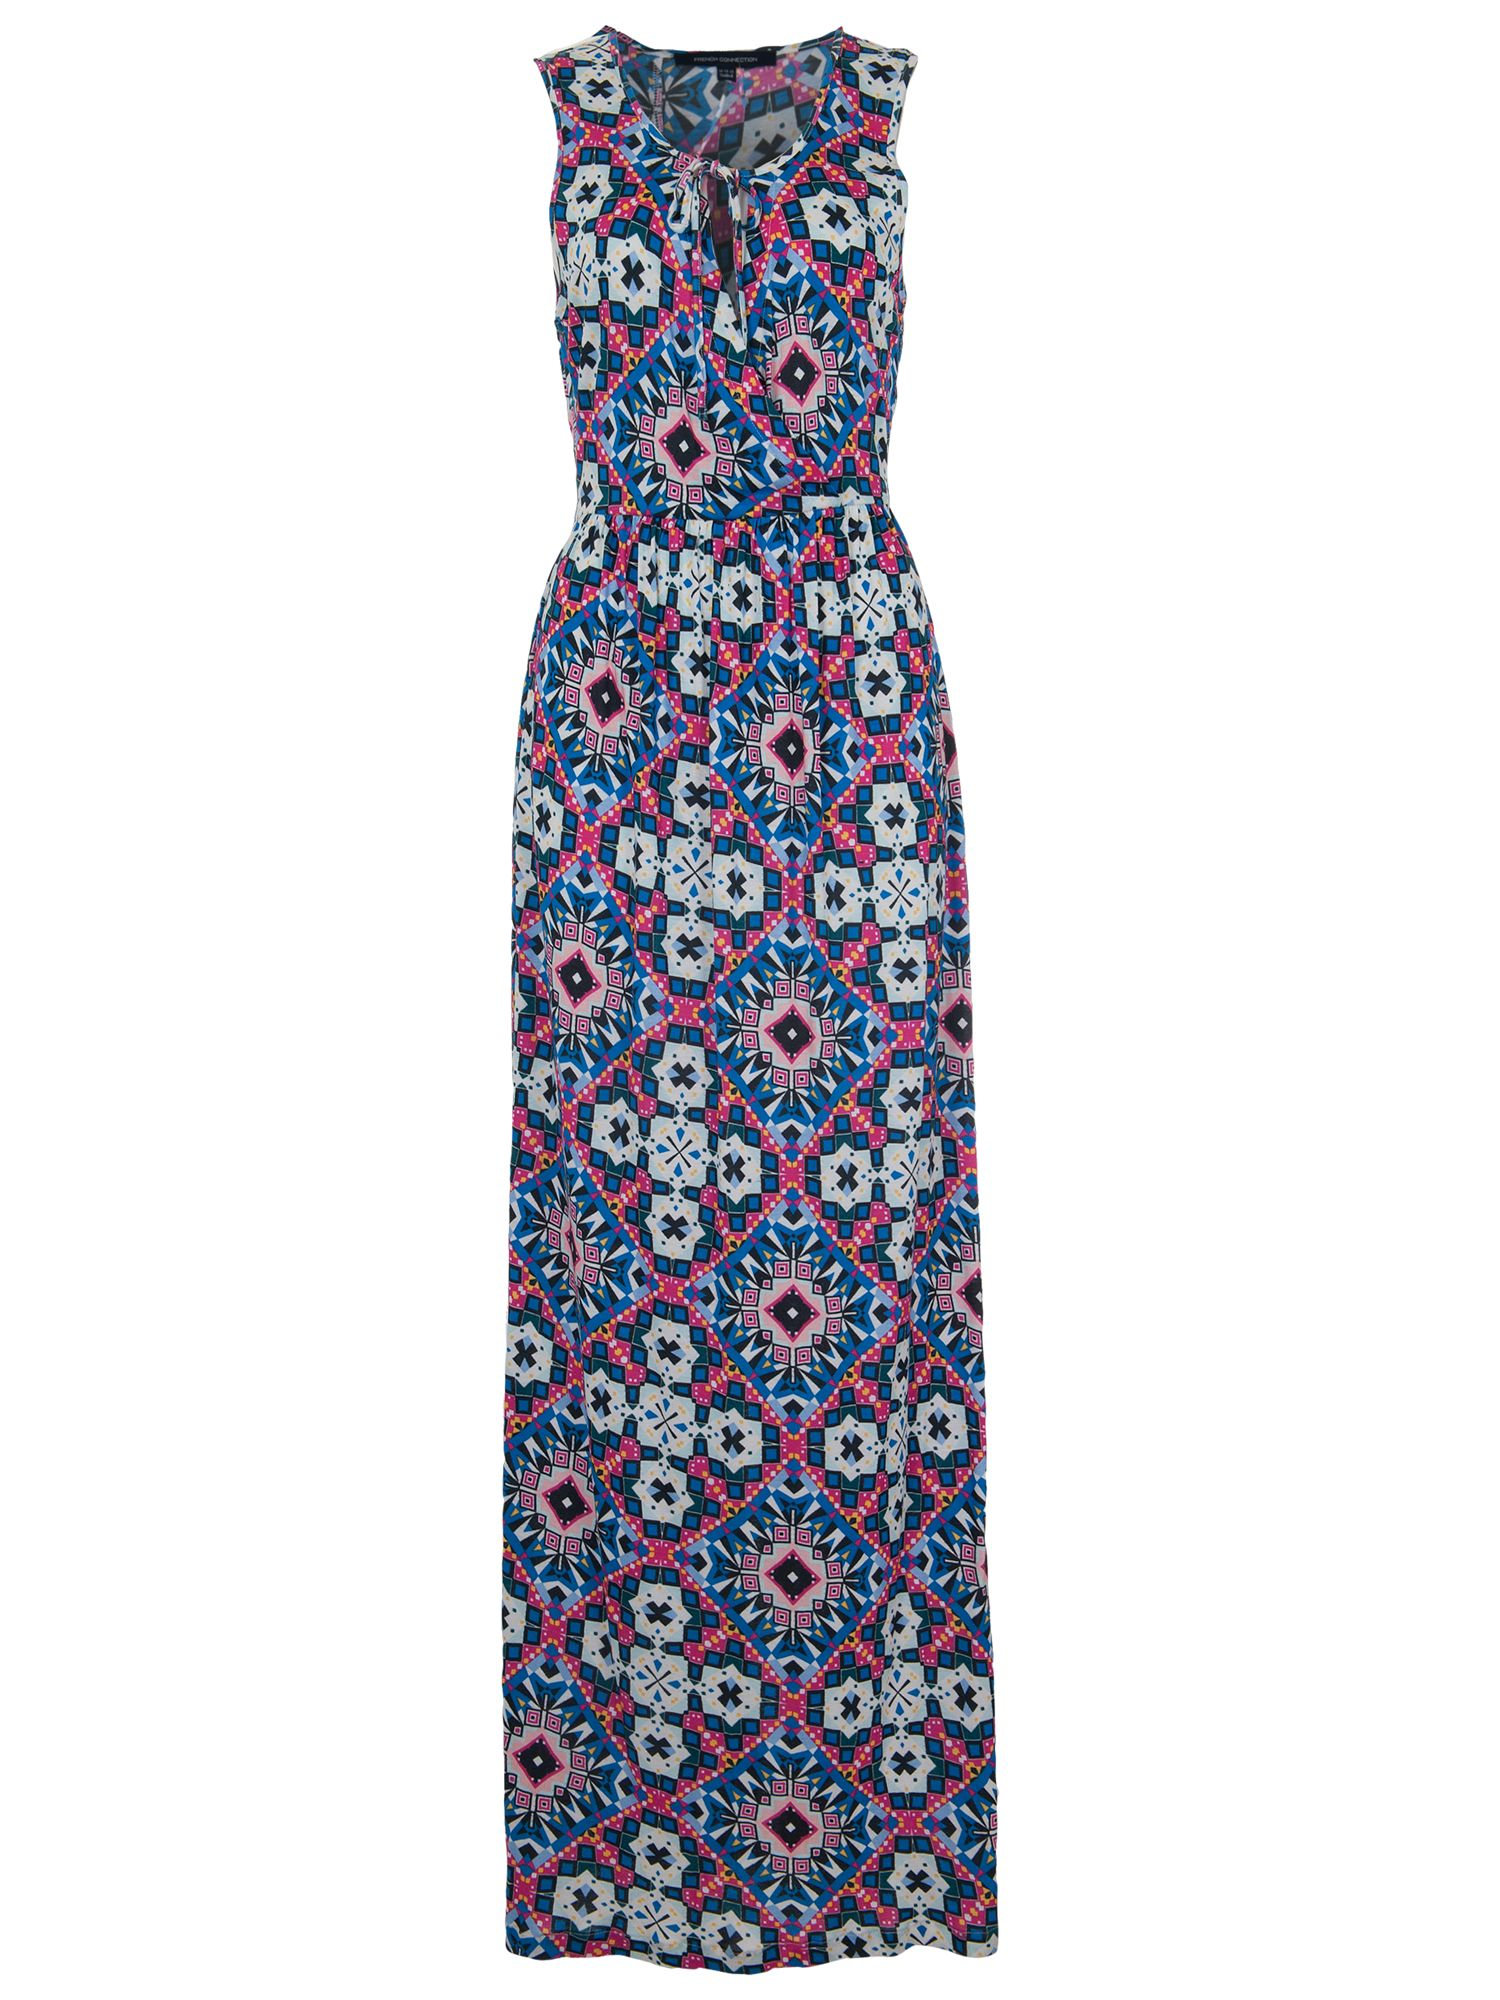 french connection mosaic asia maxi dress electric blue multi, french, connection, mosaic, asia, maxi, dress, electric, blue, multi, french connection, 16|8|6|12|14|10, women, womens dresses, 1933173